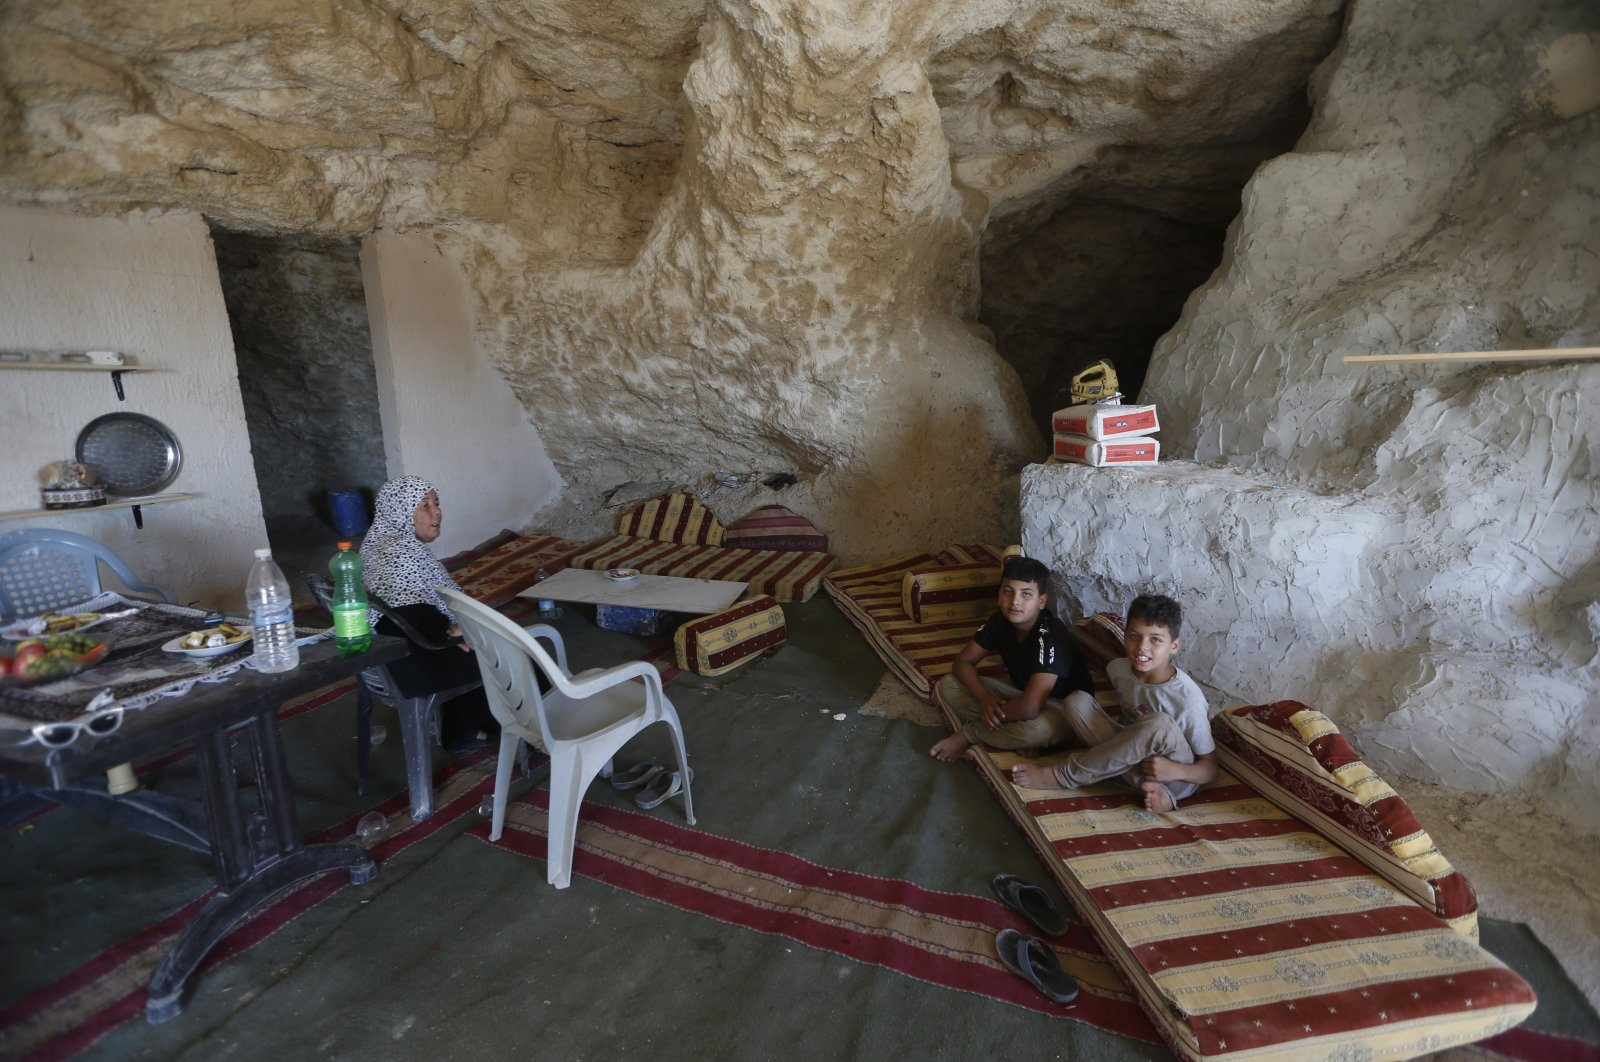 Members of a Palestinian family sit inside a cave they use as their home on the outskirts of the West Bank City of Jenin, Palestine, Aug. 1, 2020. (EPA Photo)